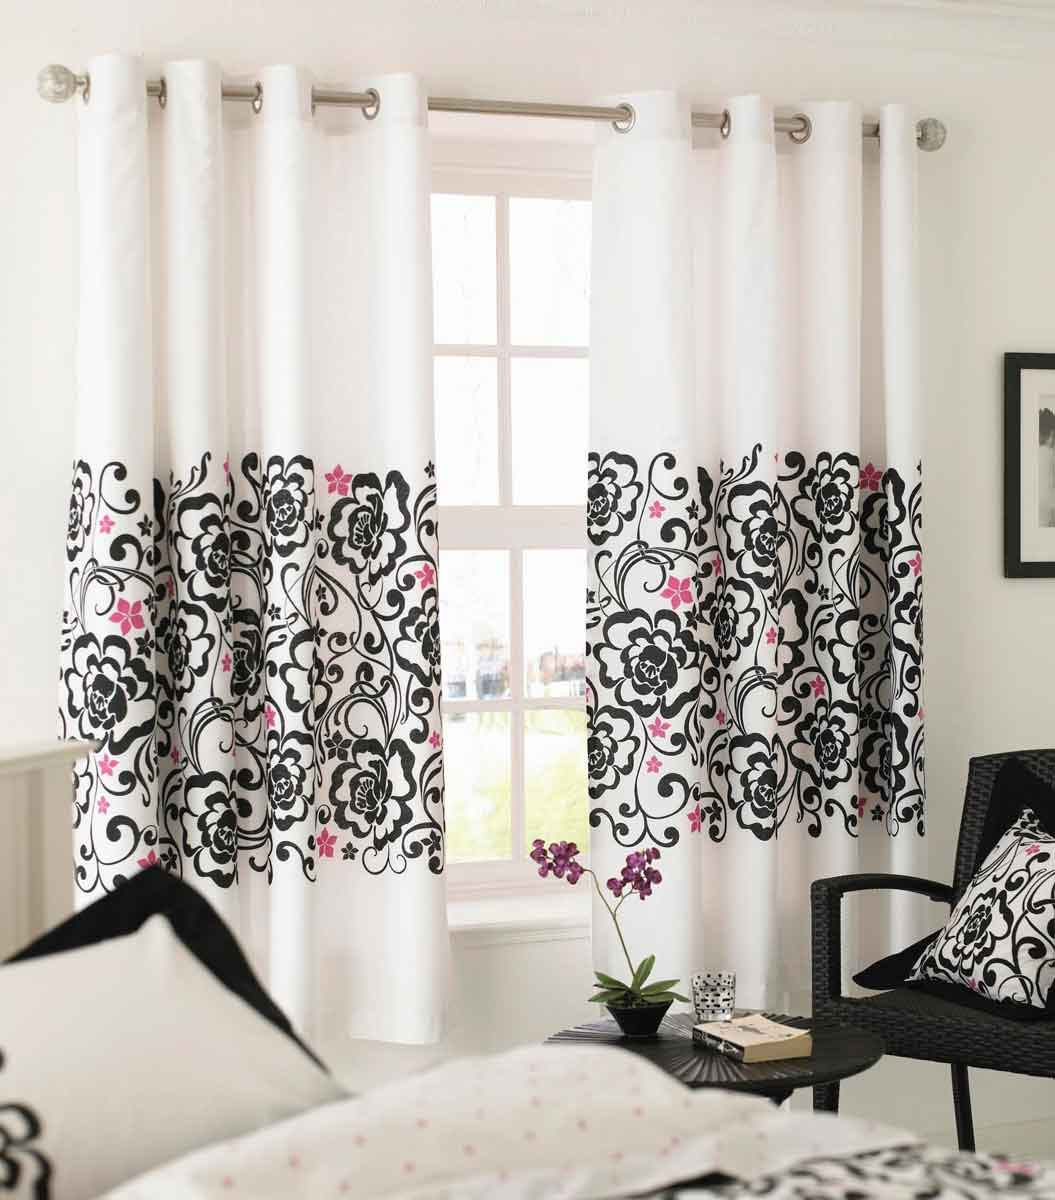 curtain fabric online cheaper than retail price buy clothing accessories and lifestyle products for women men